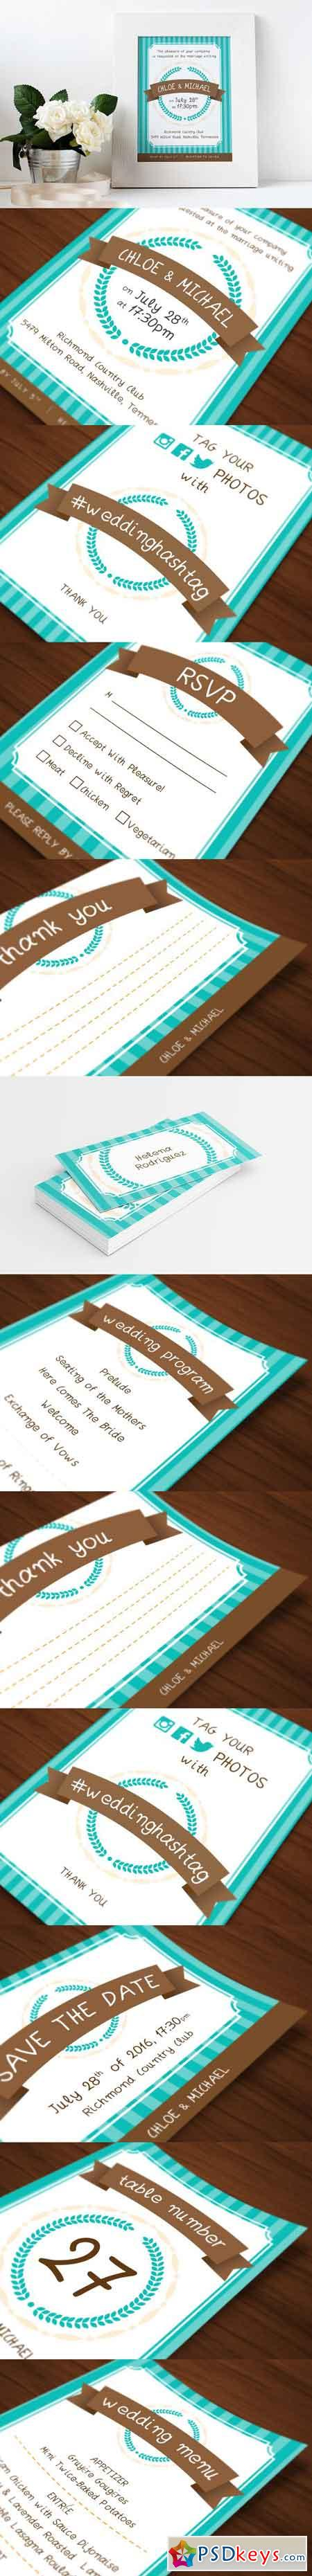 Wedding Invitations Set - Turquoise 1632966